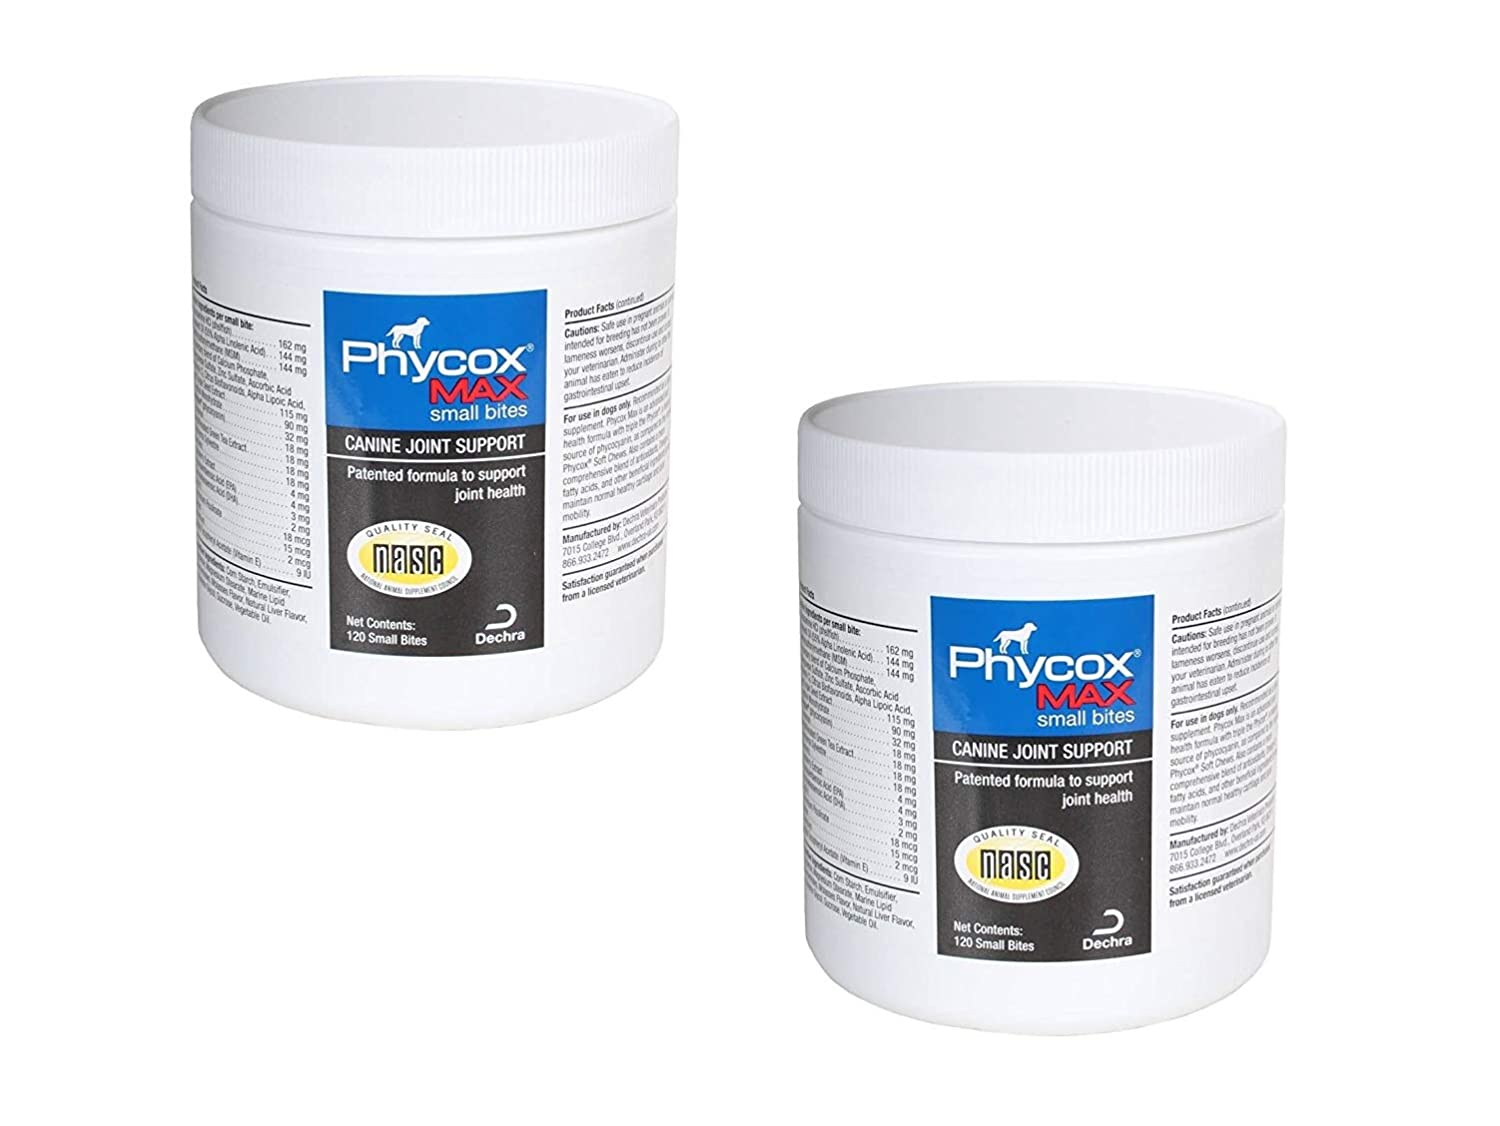 PhyCox Max Soft Chews for Dogs, 120- Small Bites